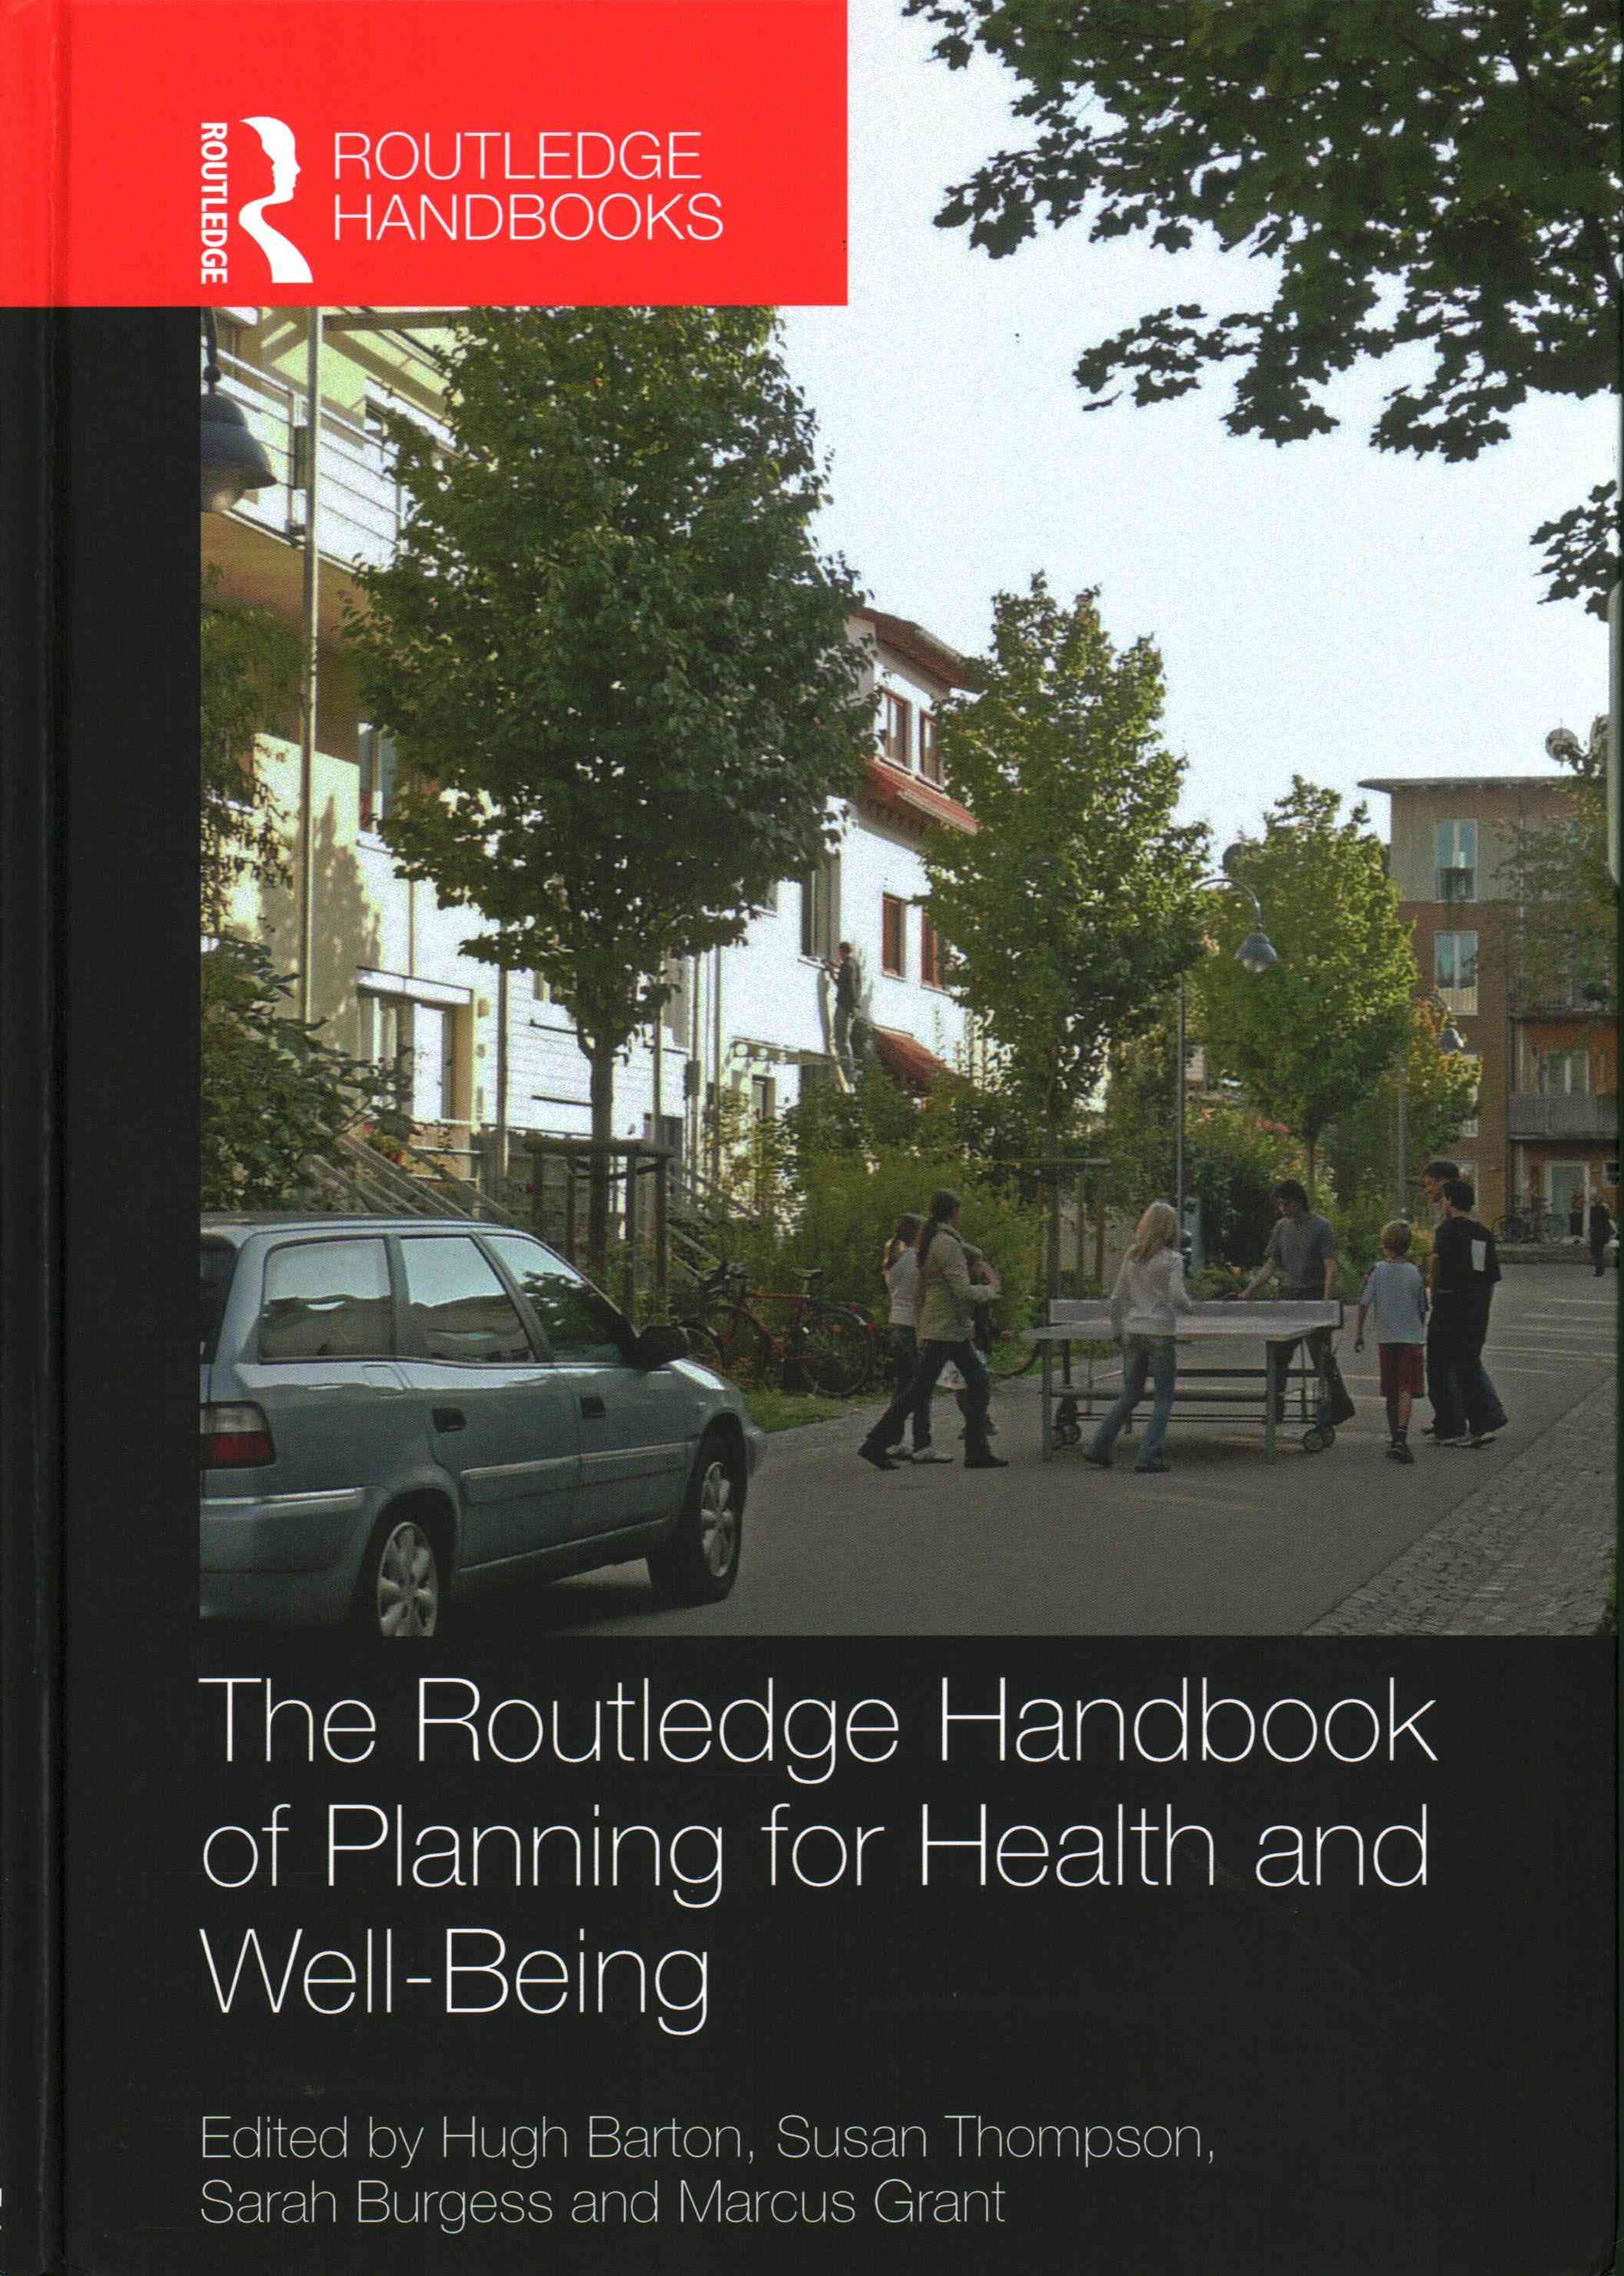 Routledge Handbook of Planning for Health and Well-Being